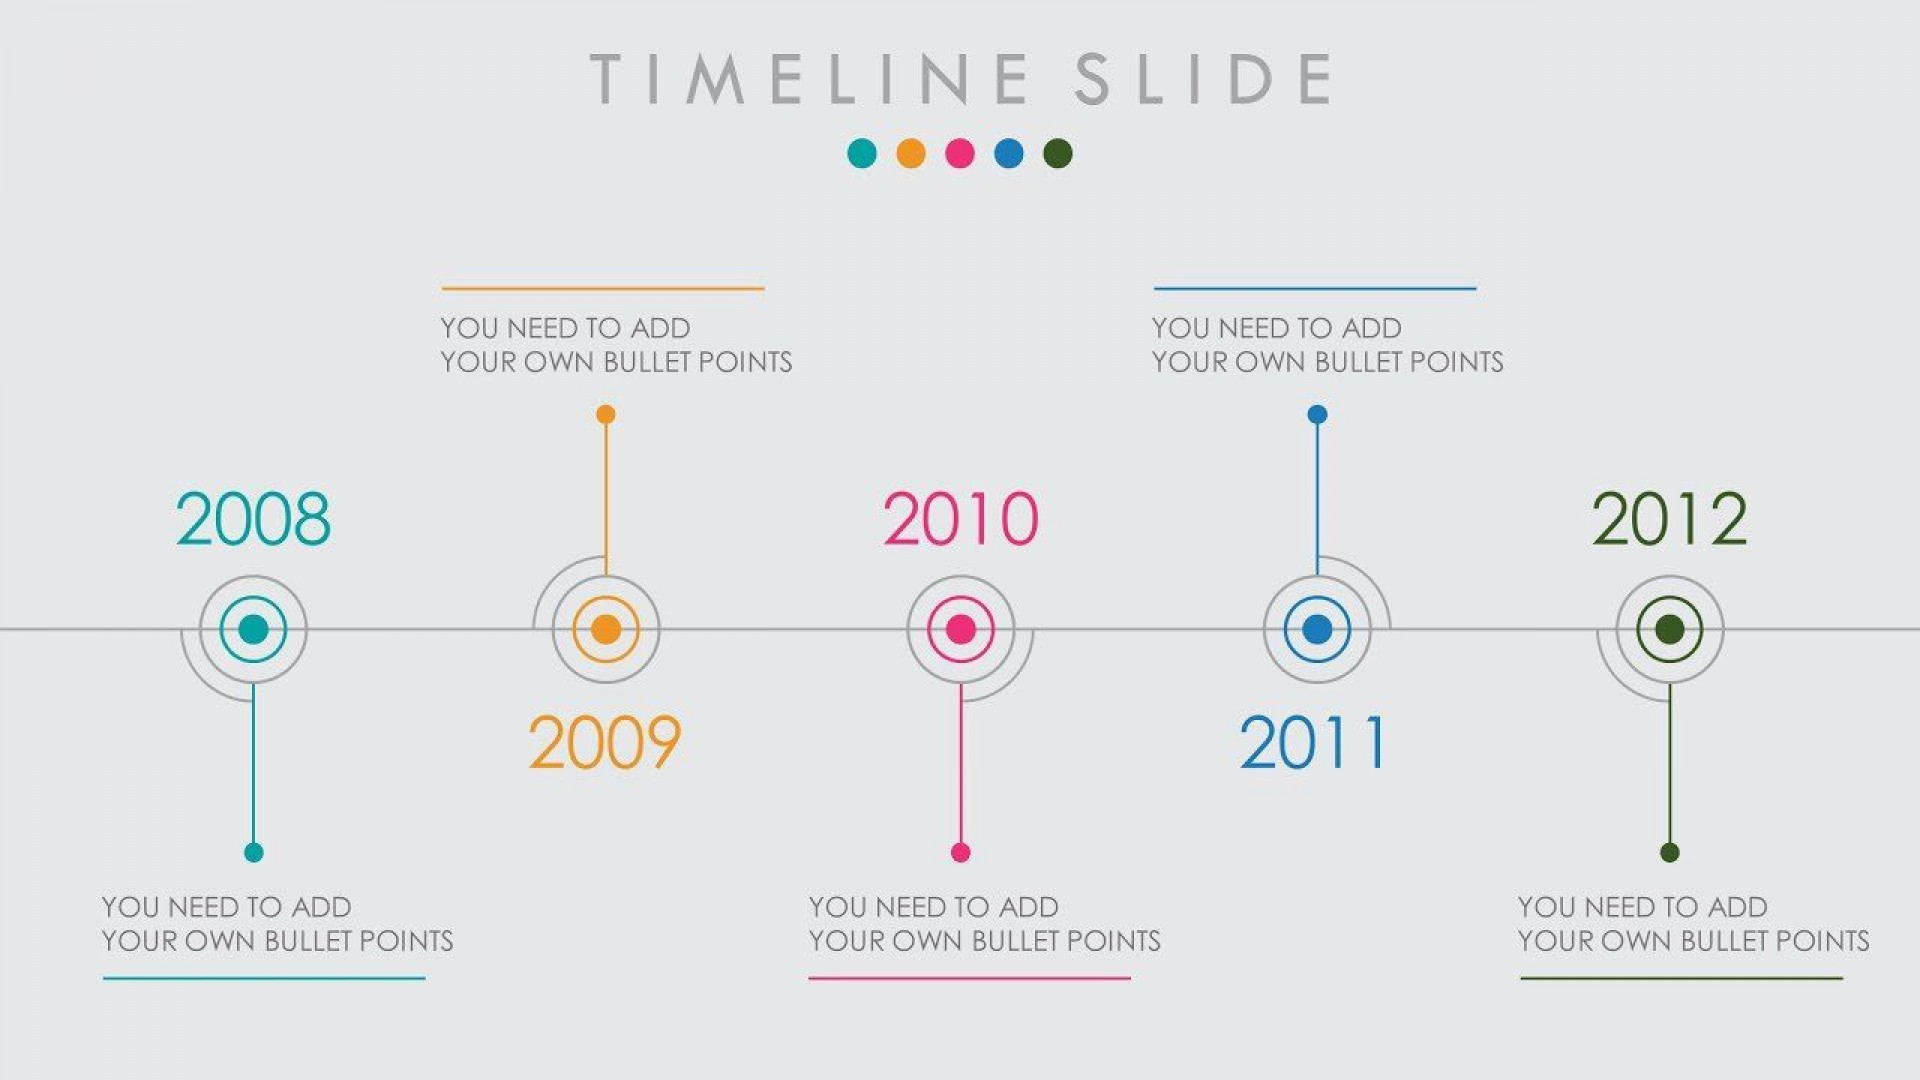 005 Magnificent Timeline Example Presentation Sample  Project Slide Template1920